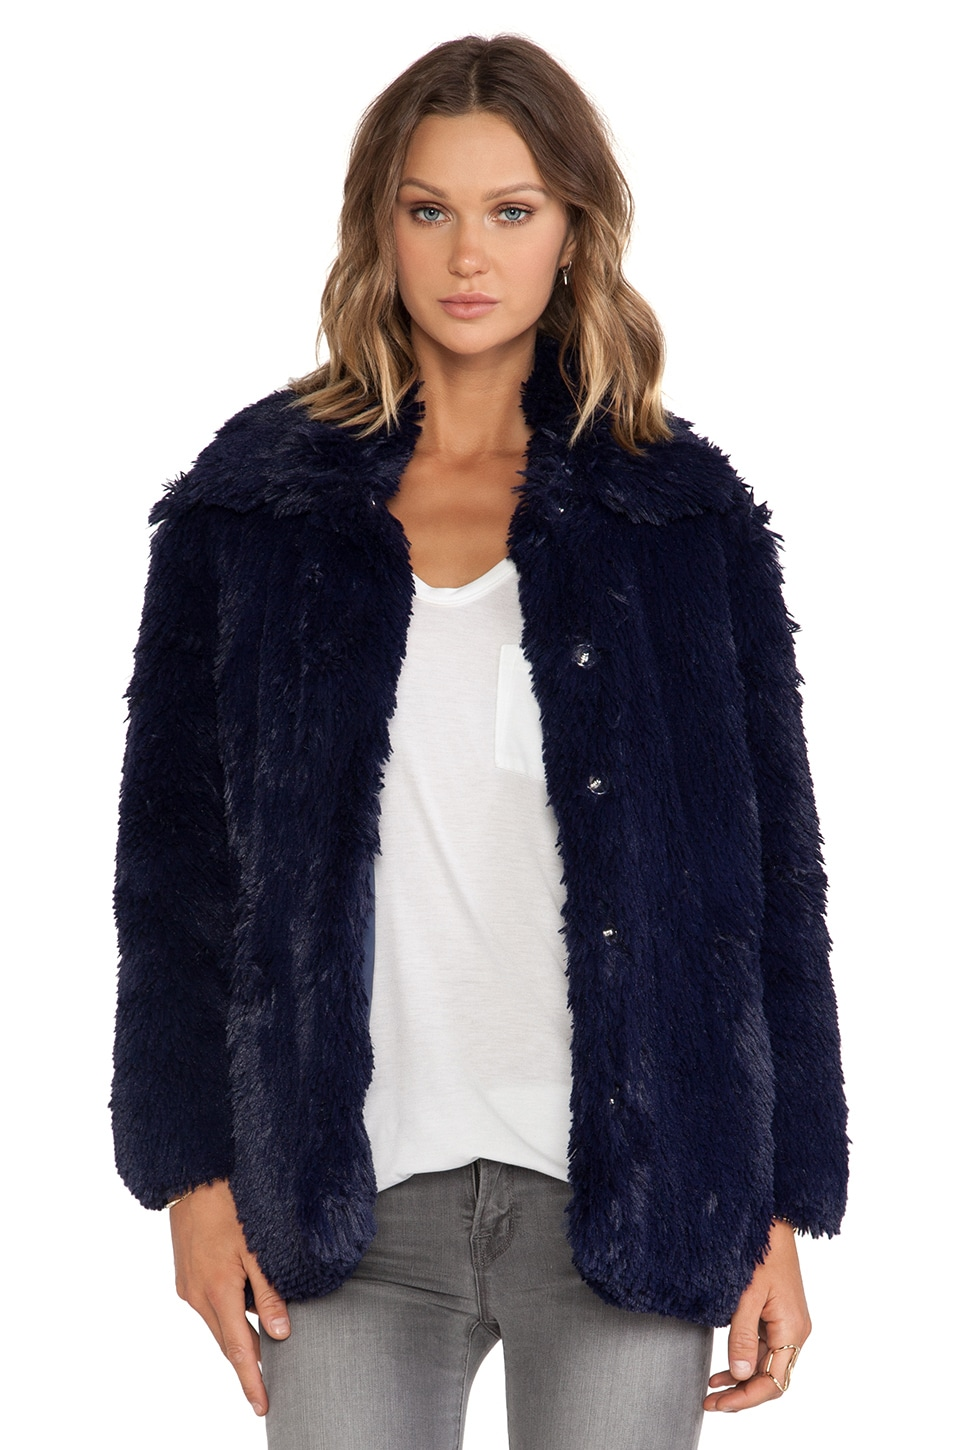 Cheap Monday Furious Faux Fur Jacket in Bleak Blue | REVOLVE